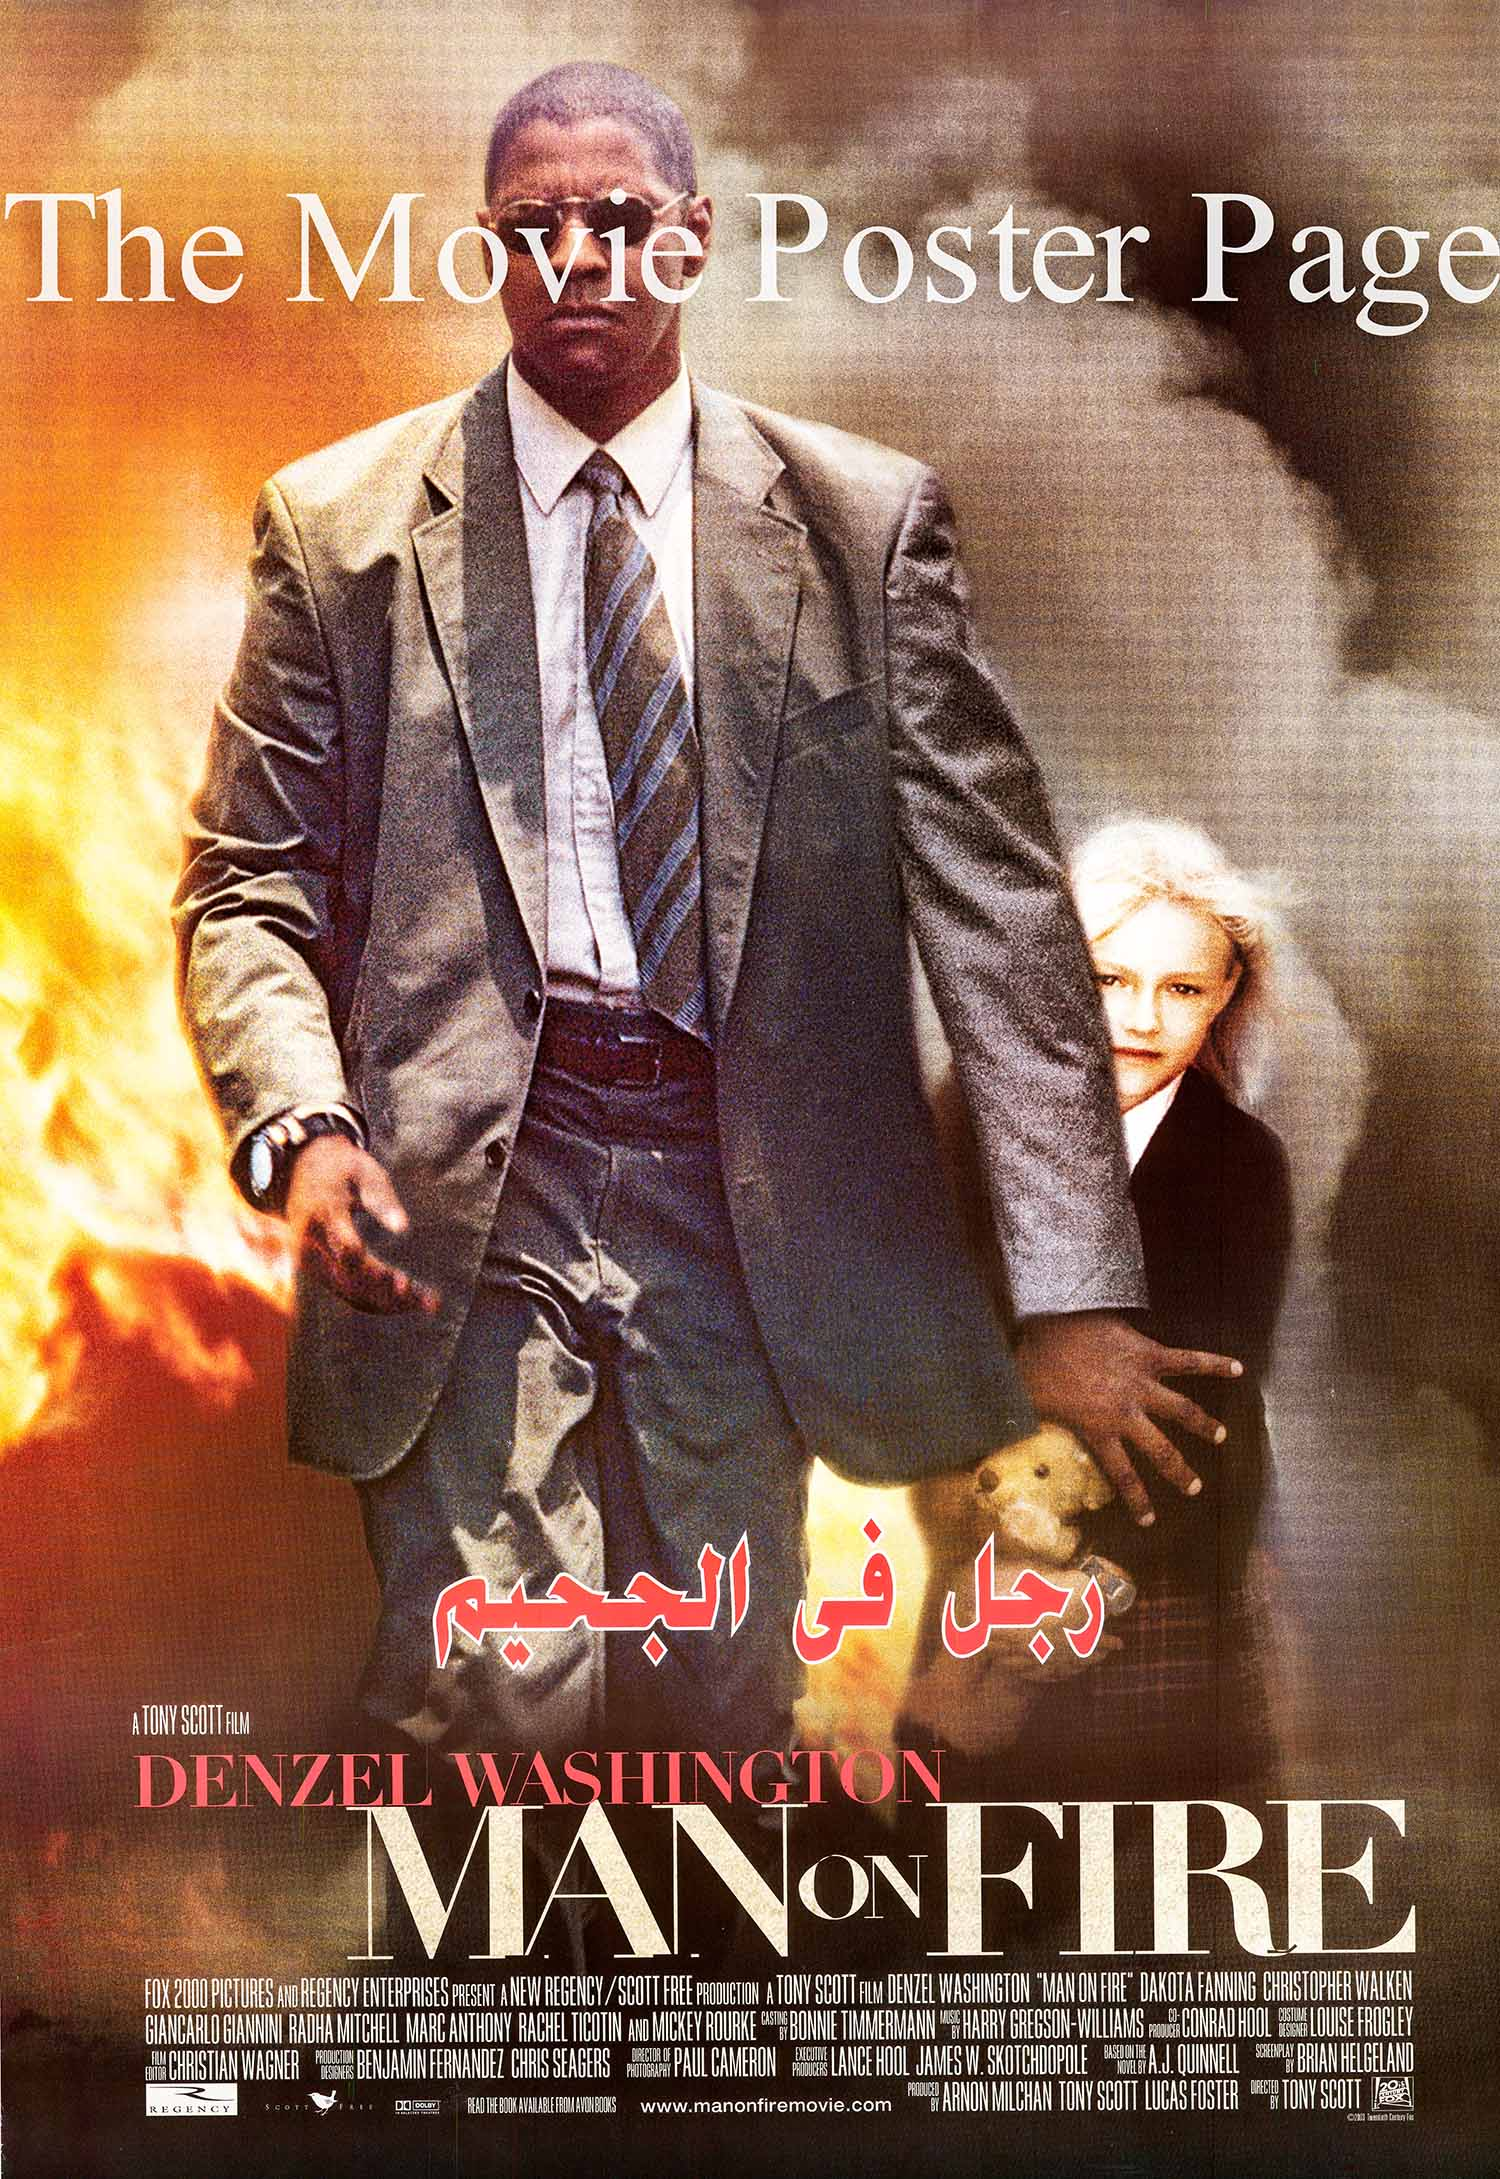 Pictured is an Egyptian promotional poster for the 2004 Tony Scott film Man on Fire starring Denzel Washington.